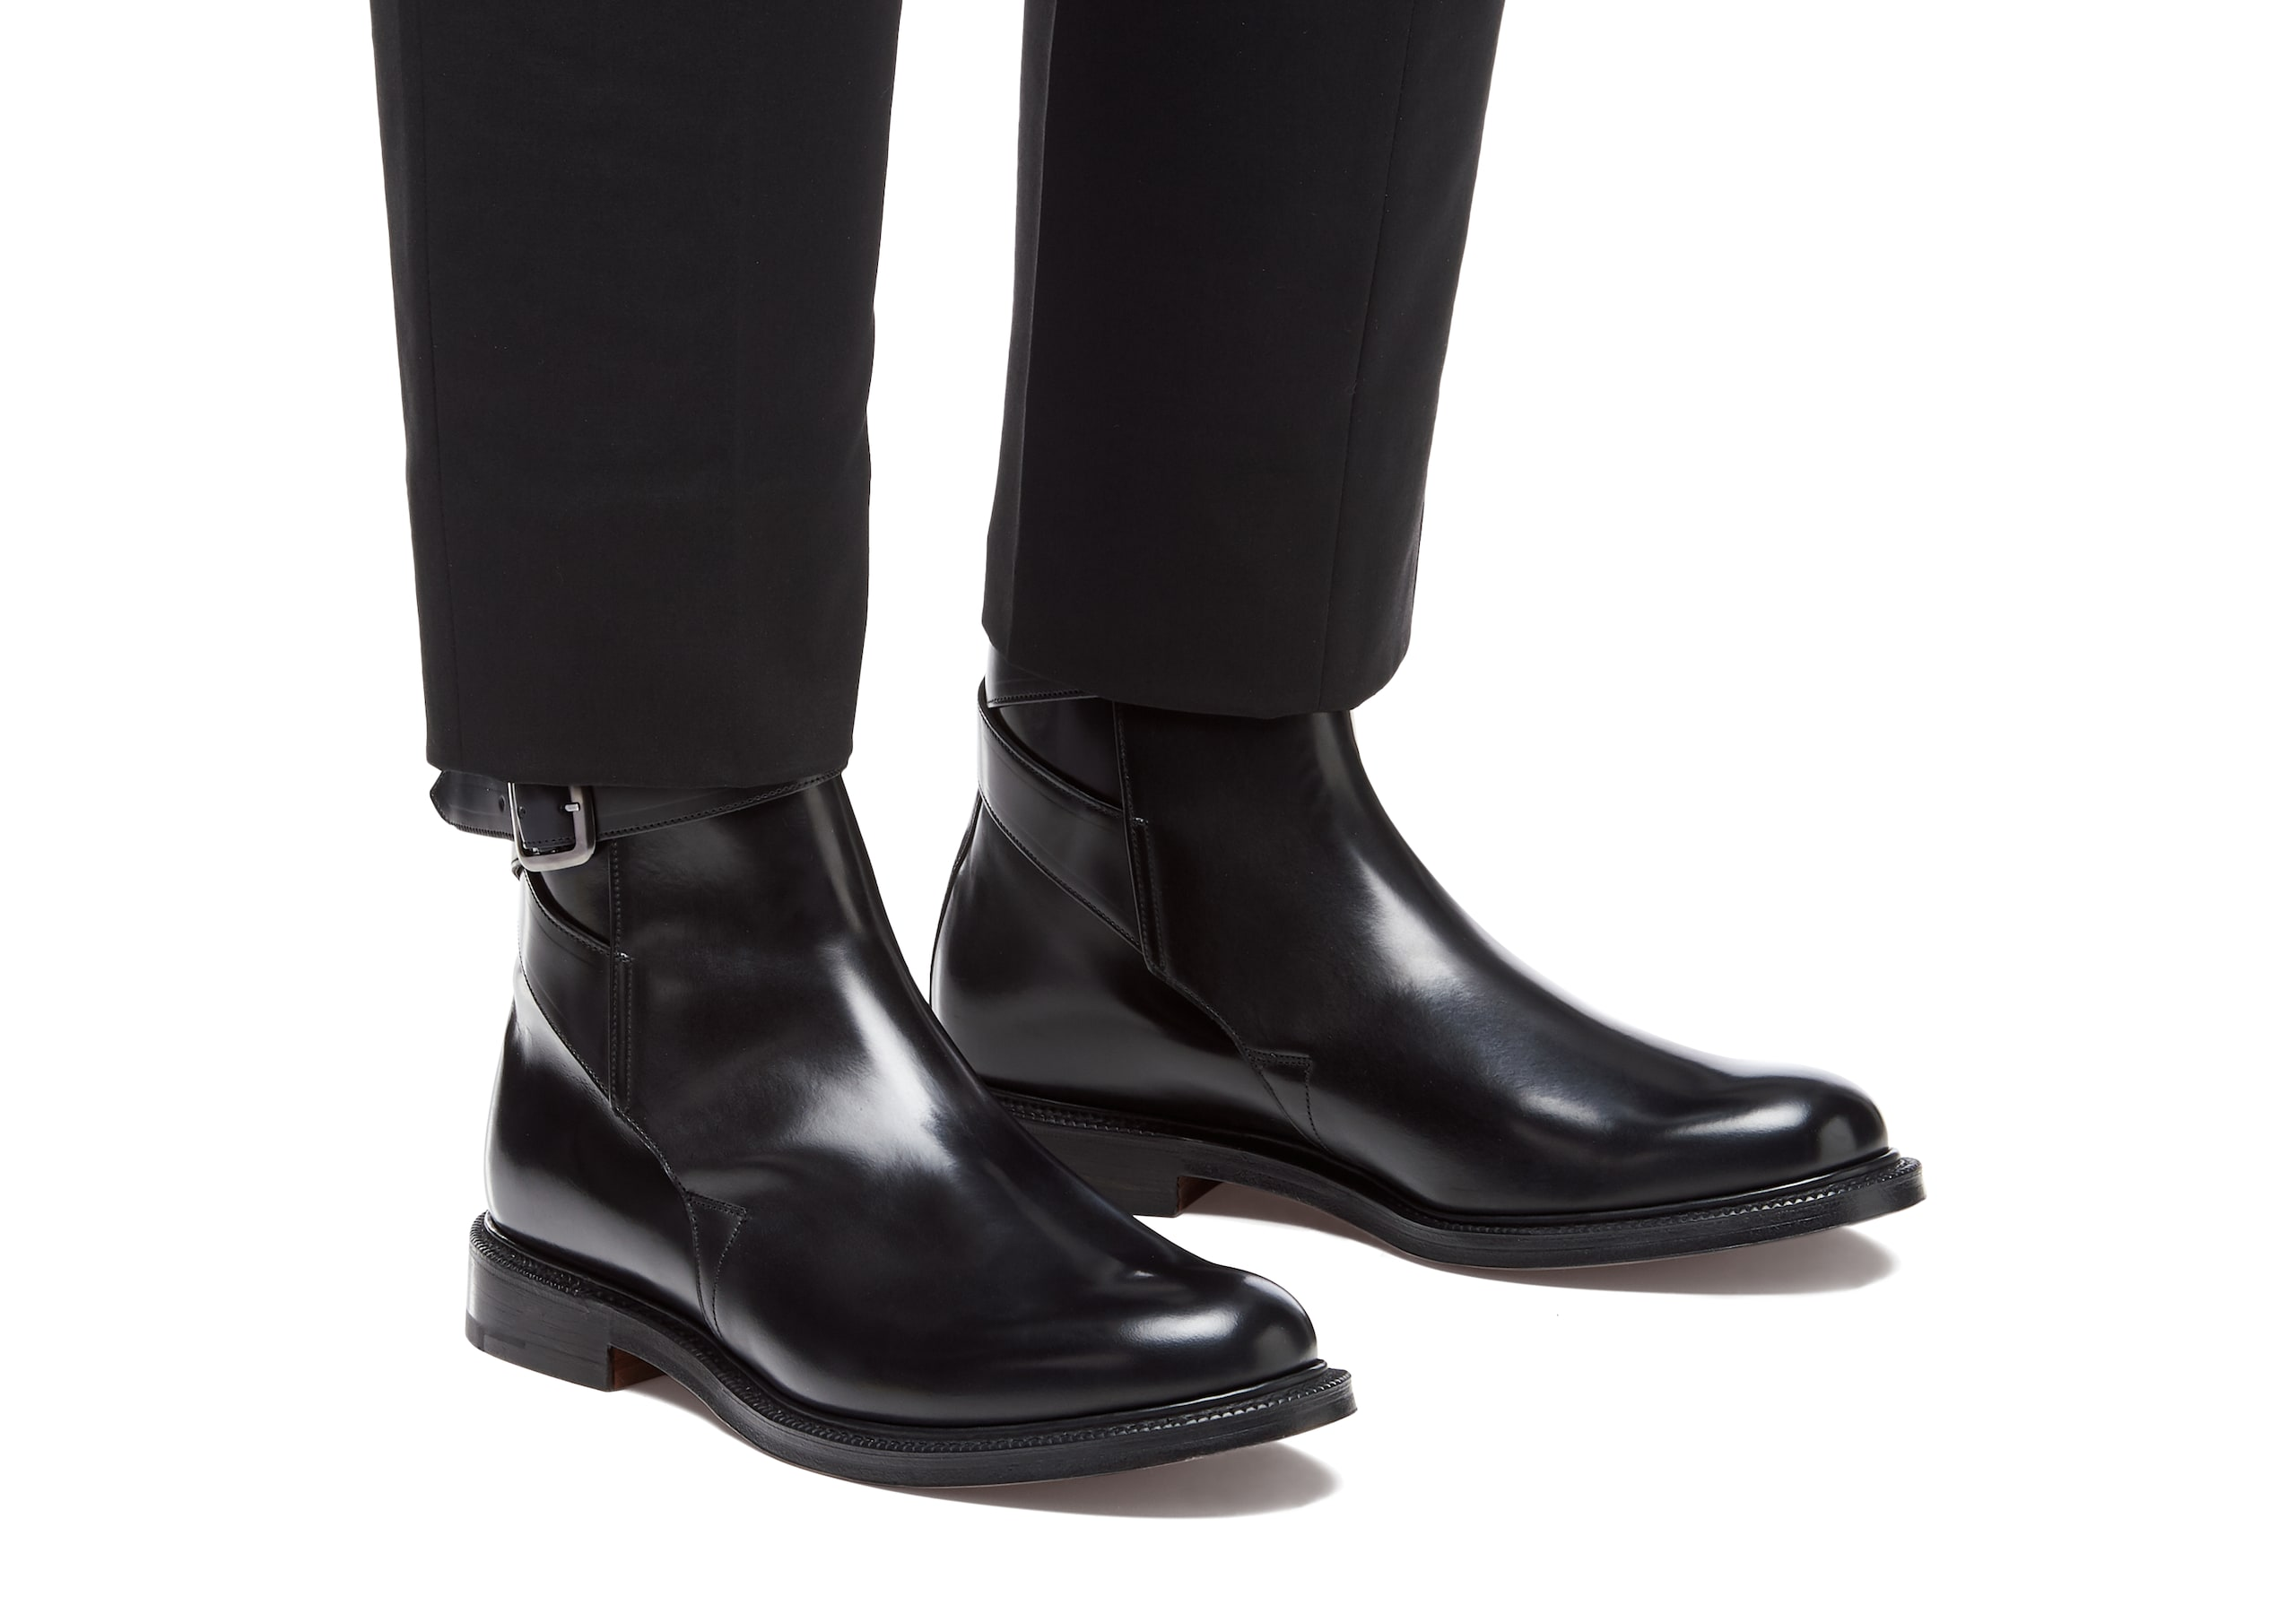 Worthing Church's Polished Binder Leather Strap Boot Black